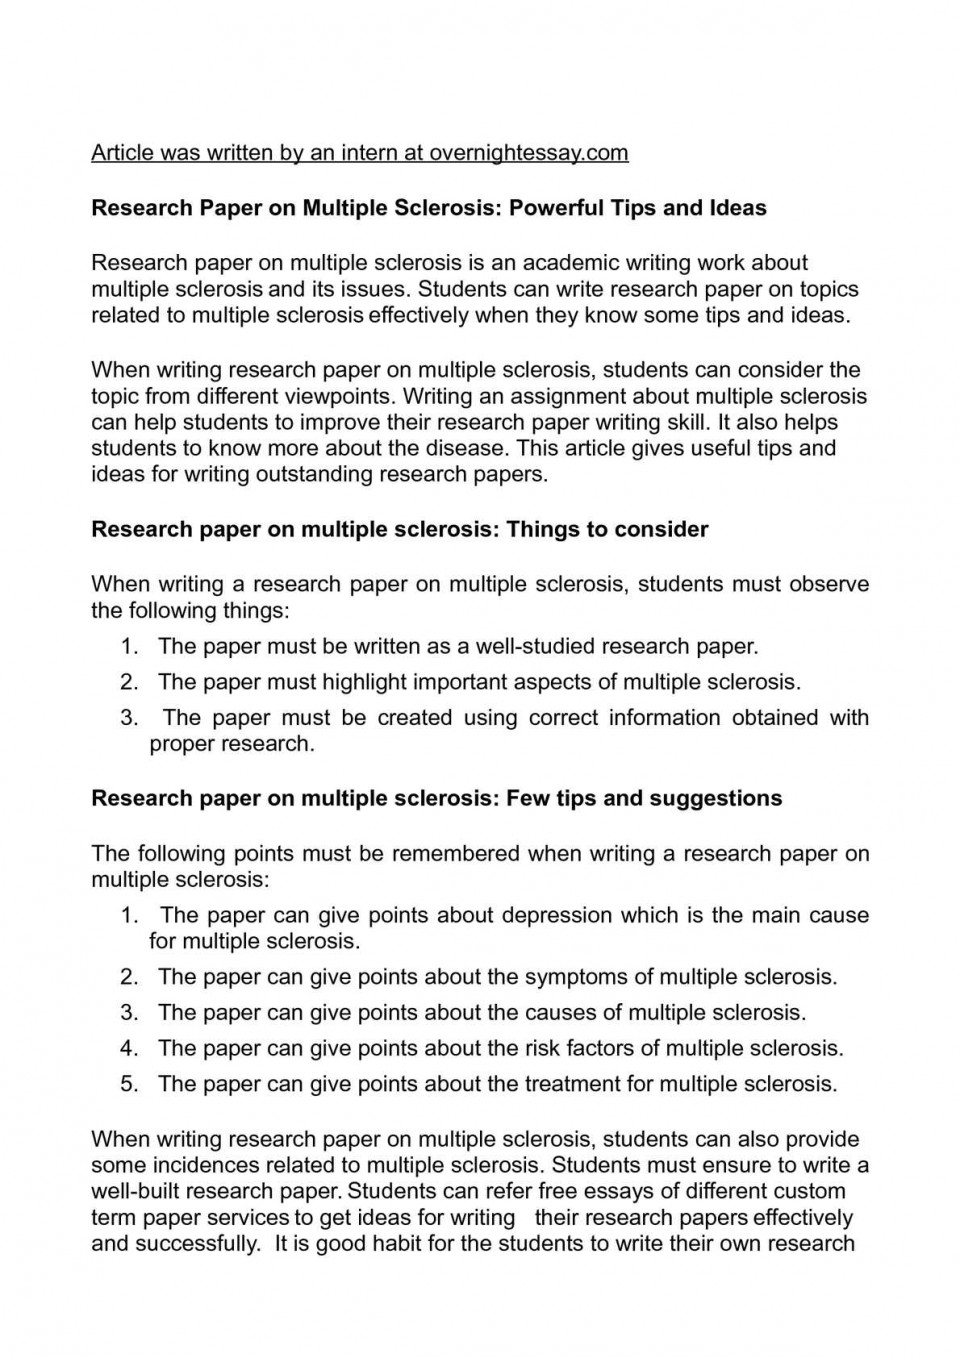 015 Research Paper How To Write Breathtaking A Introduction Apa Good Hook Statement For 960